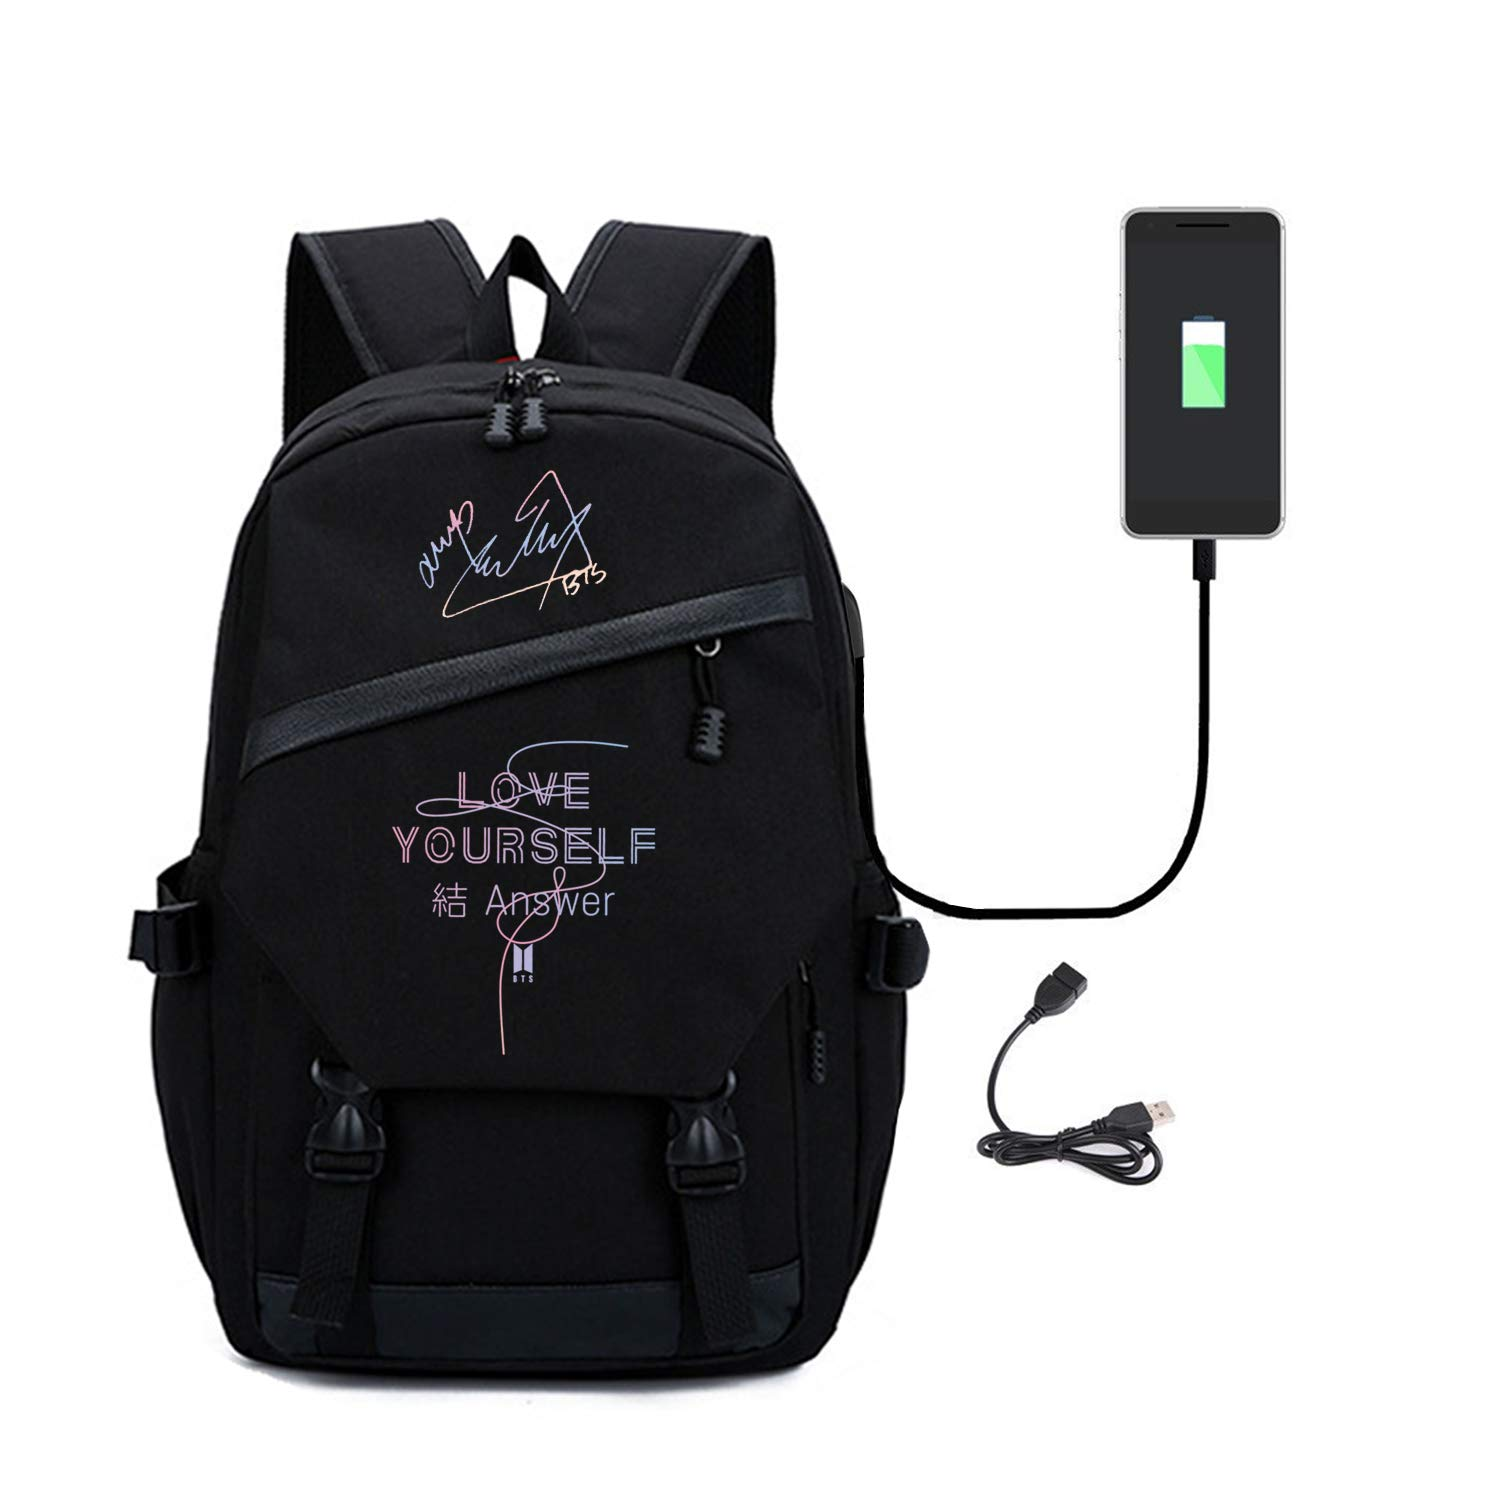 JUNG KOOK Kpop BTS Love Yourself Answer Backpack Jimin SUGA Signature Canvas Schoolbag